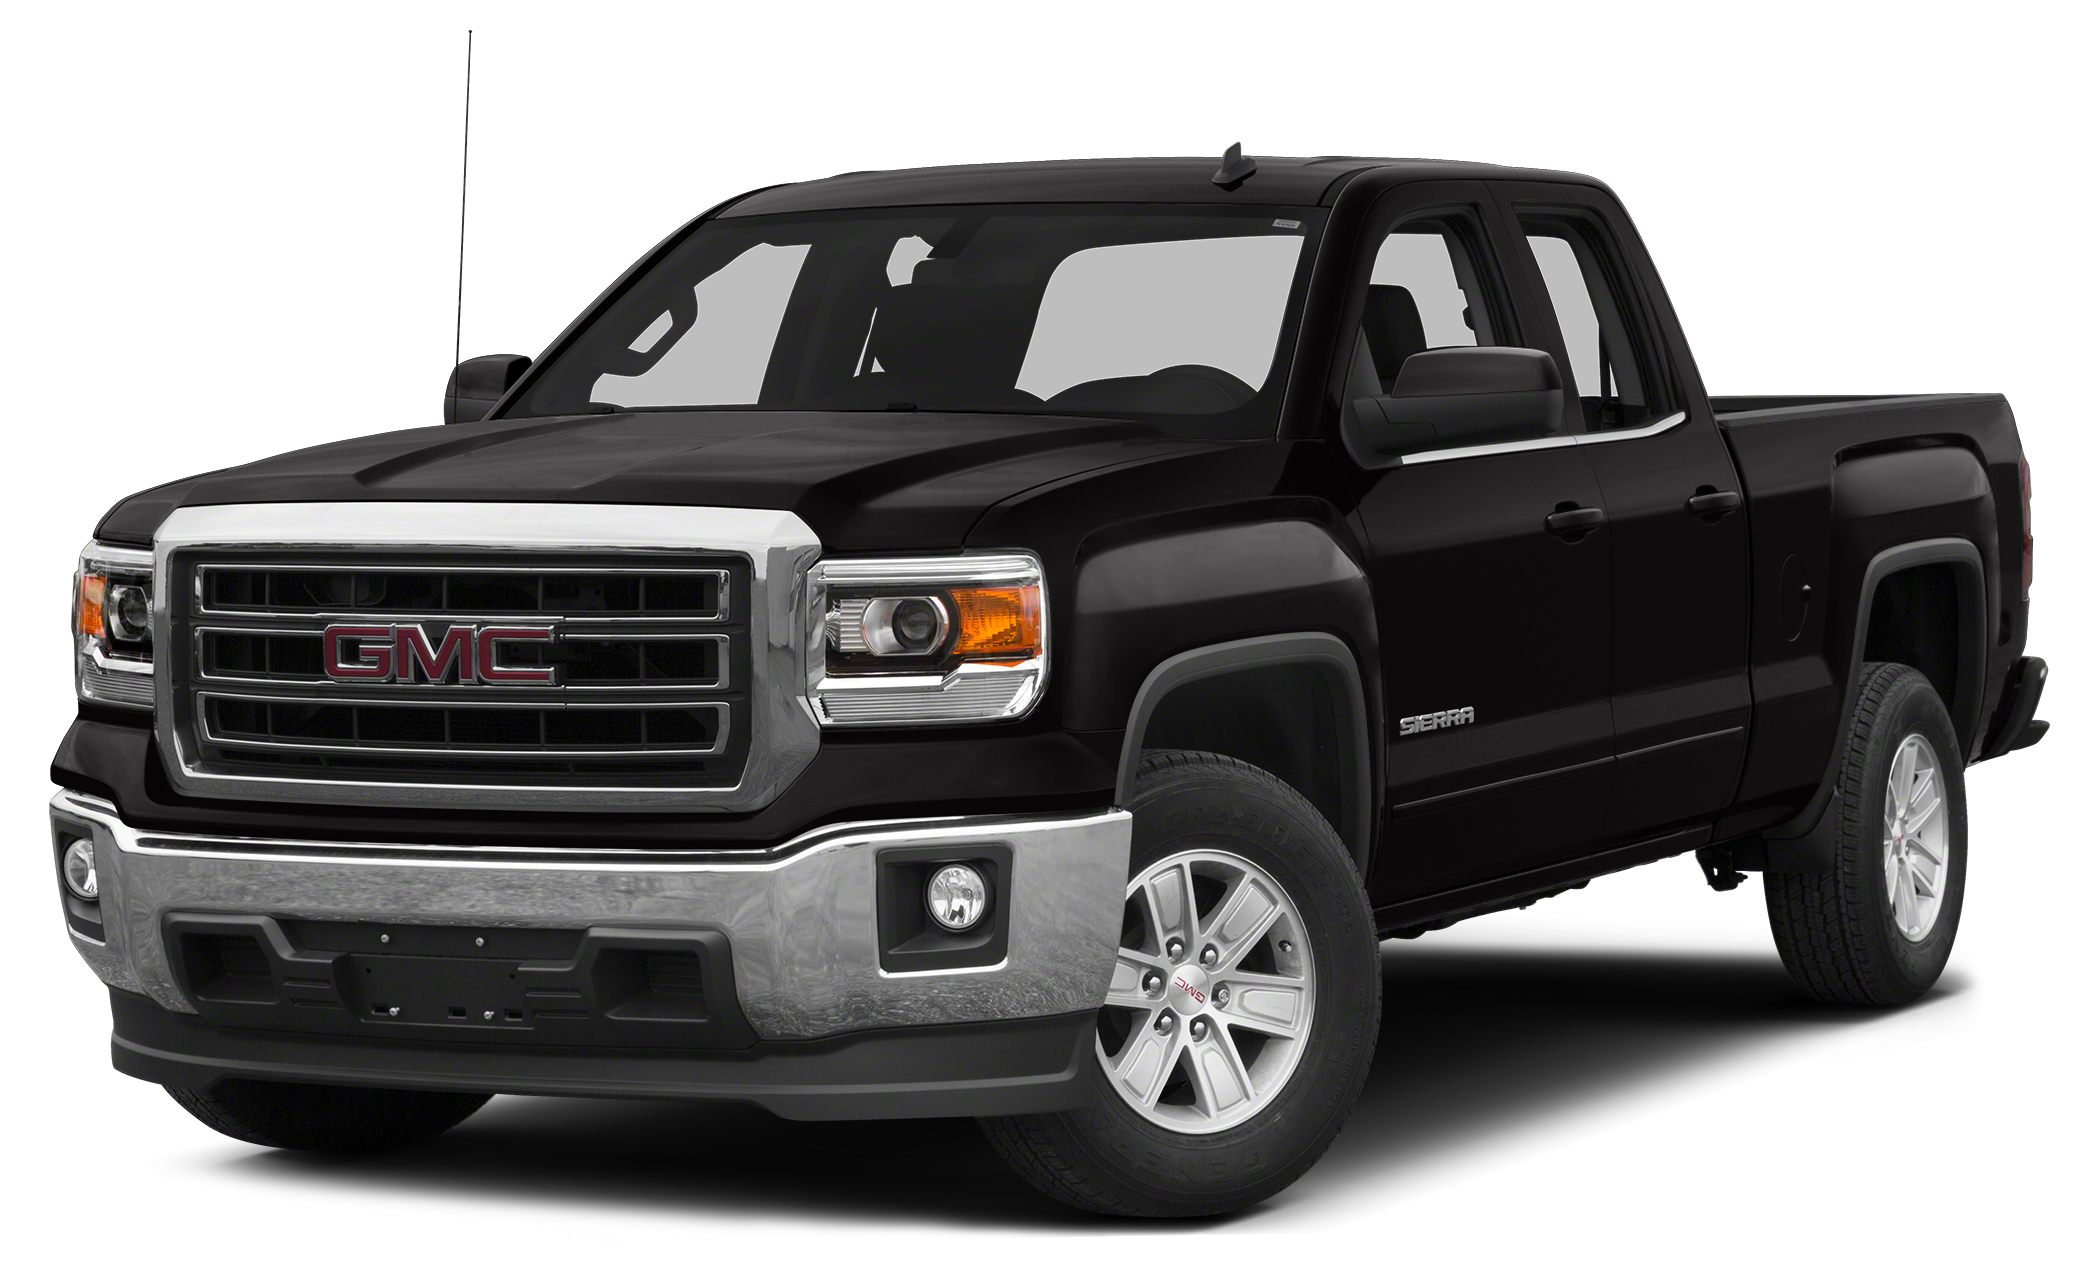 2014 GMC Sierra 1500 SLE ITS OUR 50TH ANNIVERSARY HERE AT MARTYS AND TO CELEBRATE WERE OFFERING